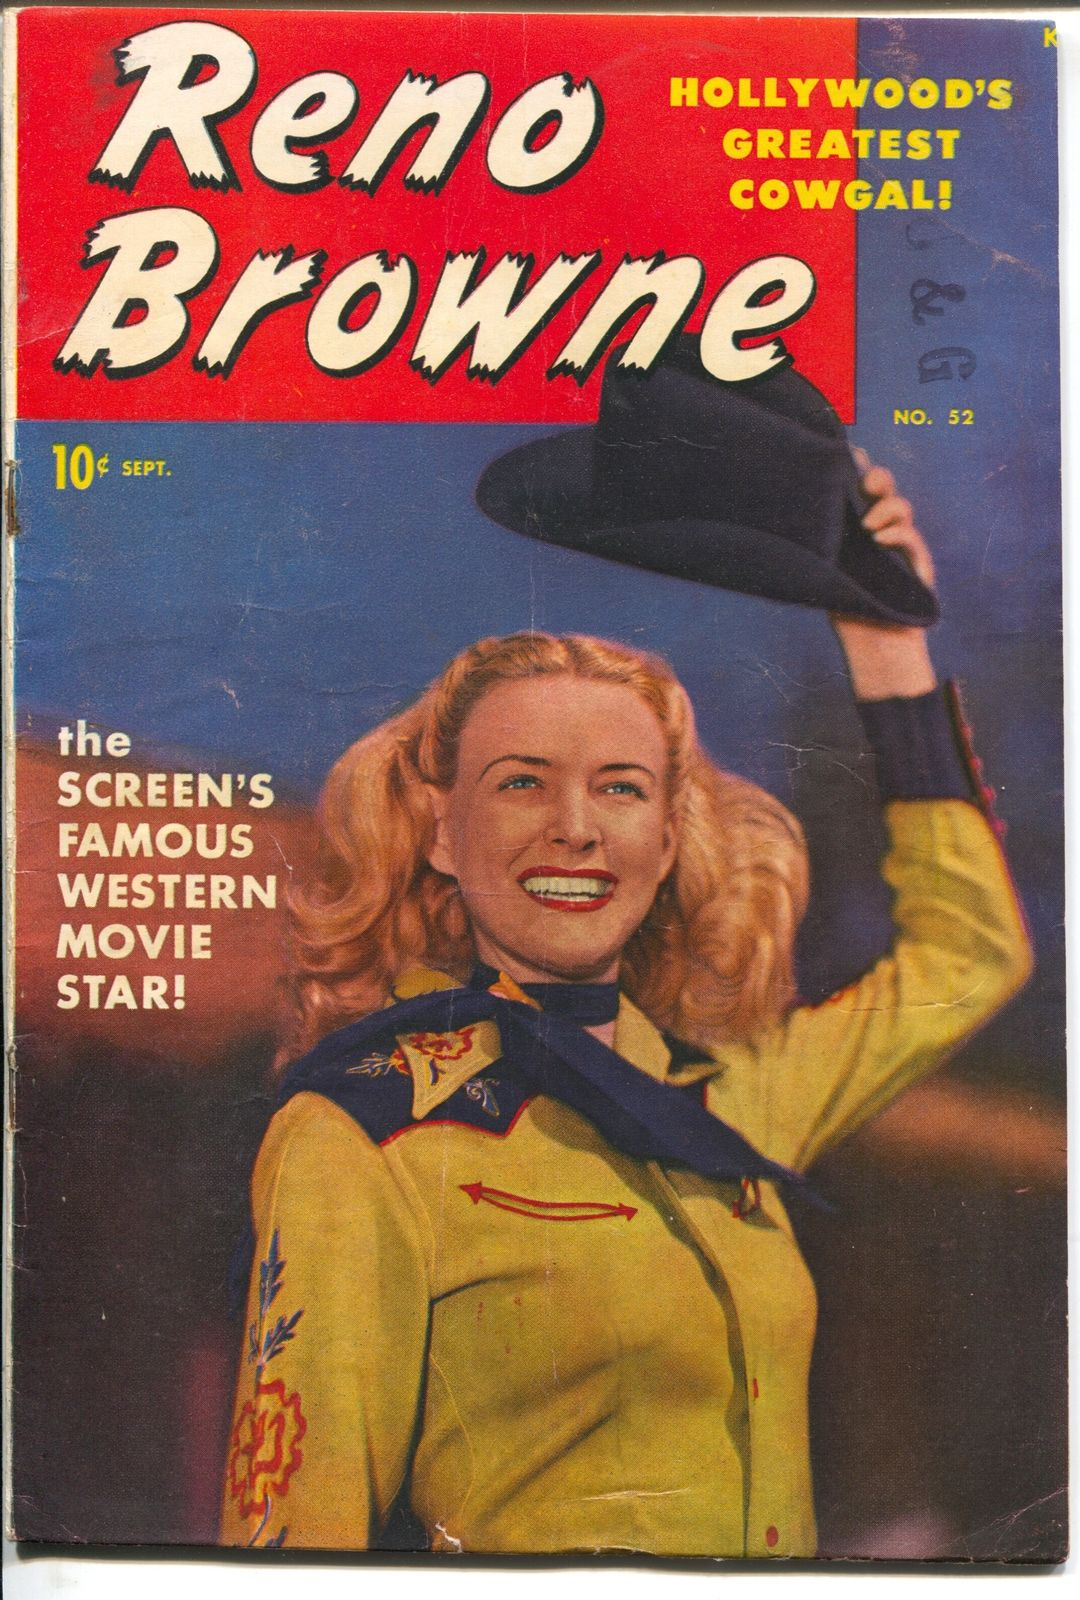 Forum on this topic: Joan Barry (American actress), reno-browne/